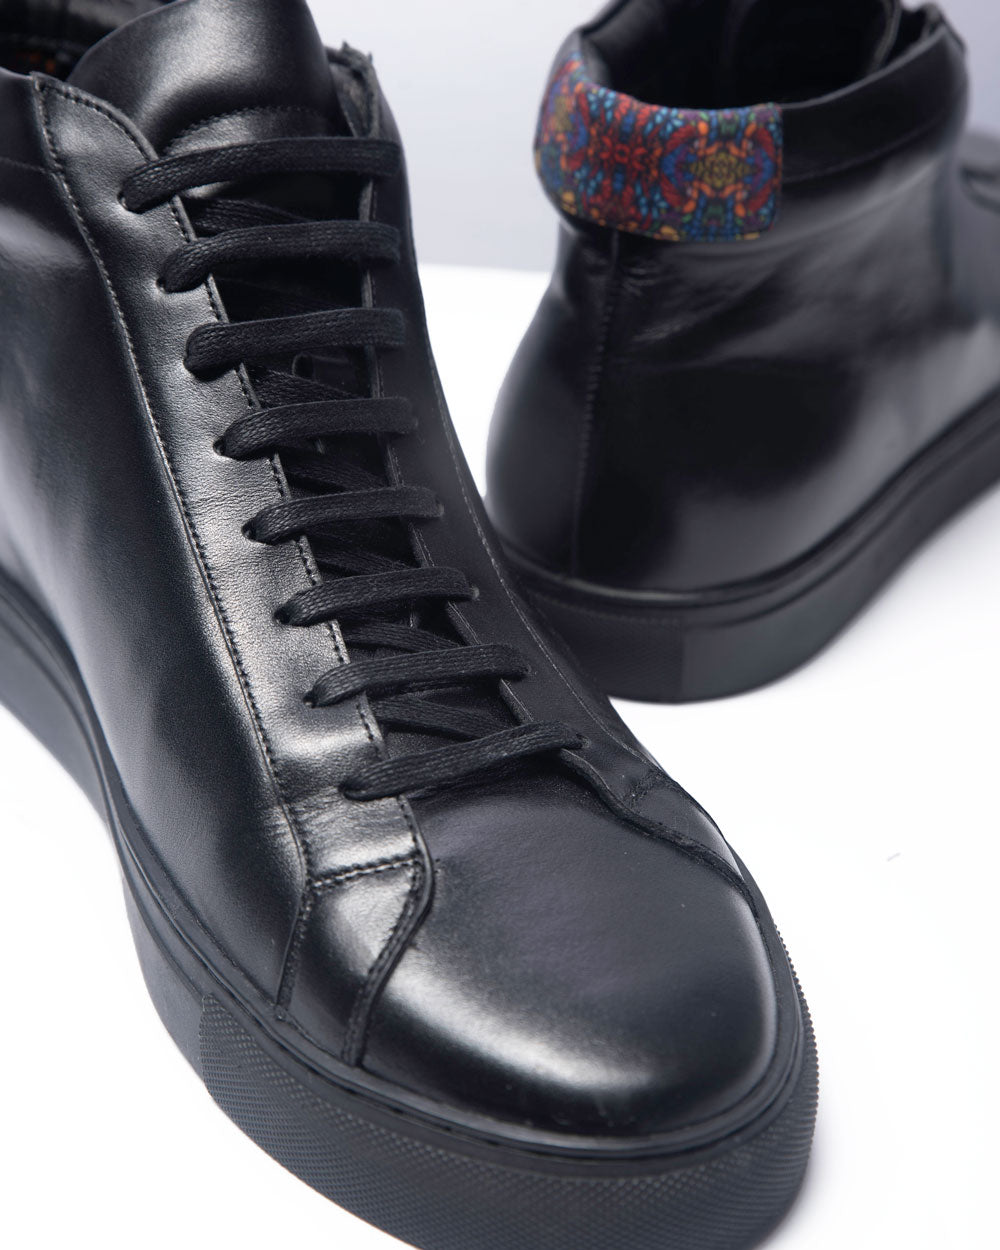 Slick Talk High Top Sneakers- Black